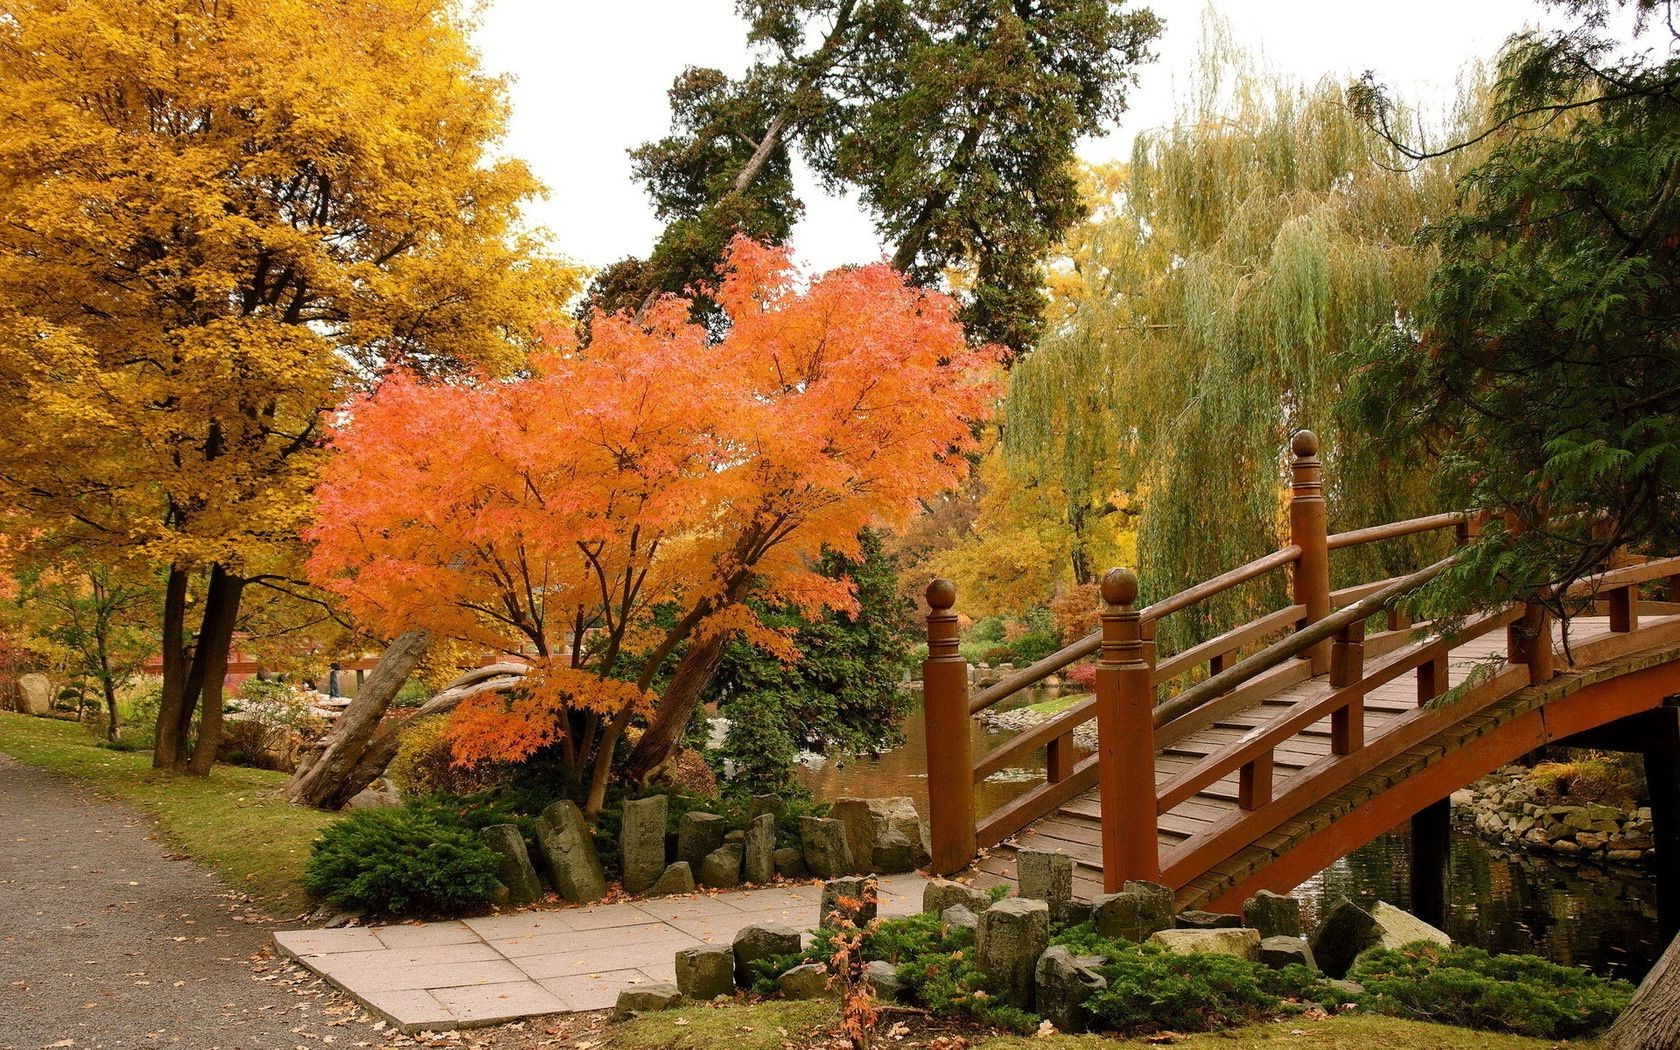 autumn fall leaf tree park nature wood outdoors landscape garden maple season scenic guidance lush travel